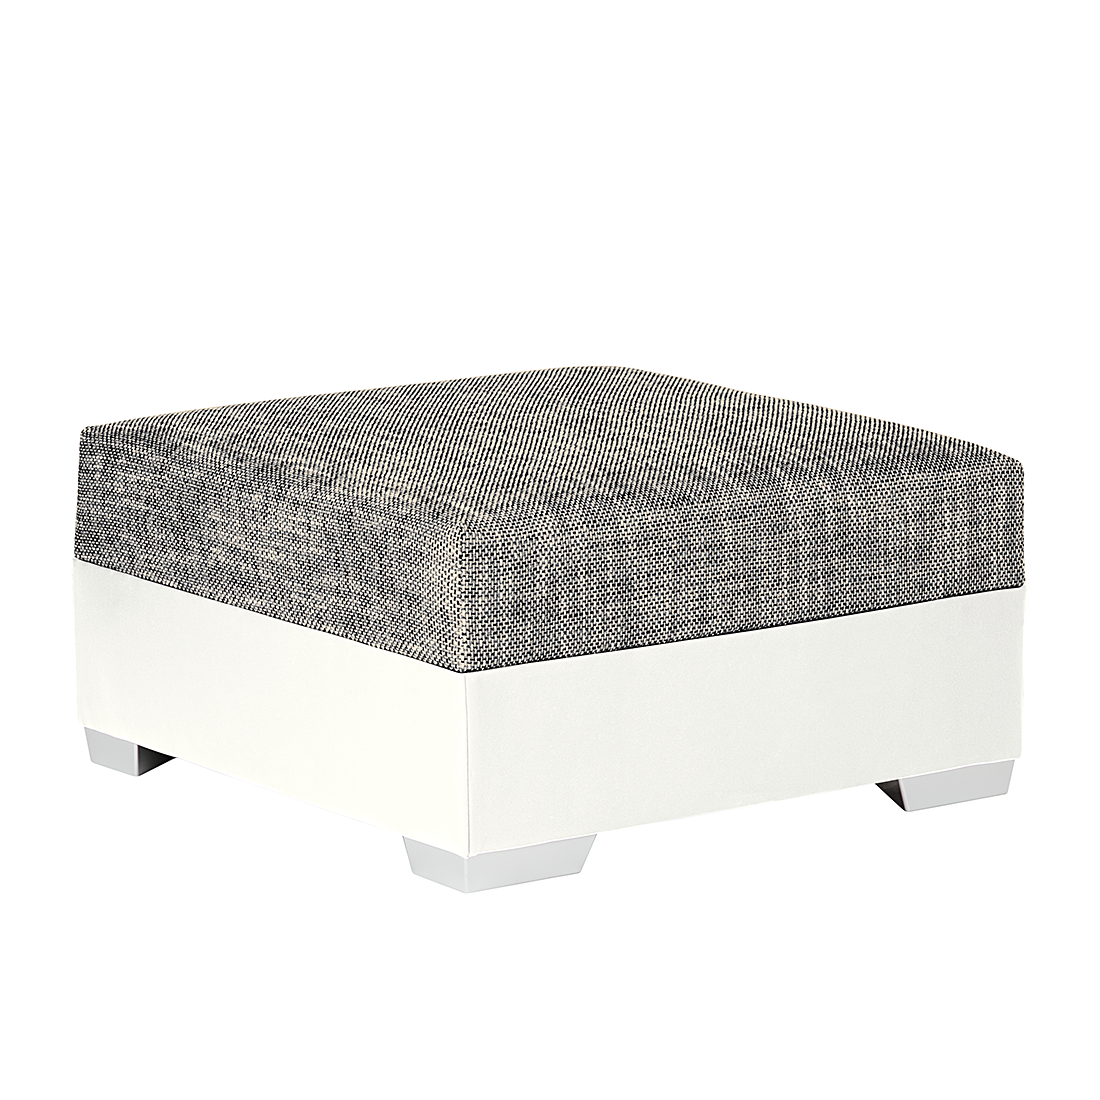 Hocker grau trendy cult living jepsen hocker grau with for Ohrensessel mit hocker grau